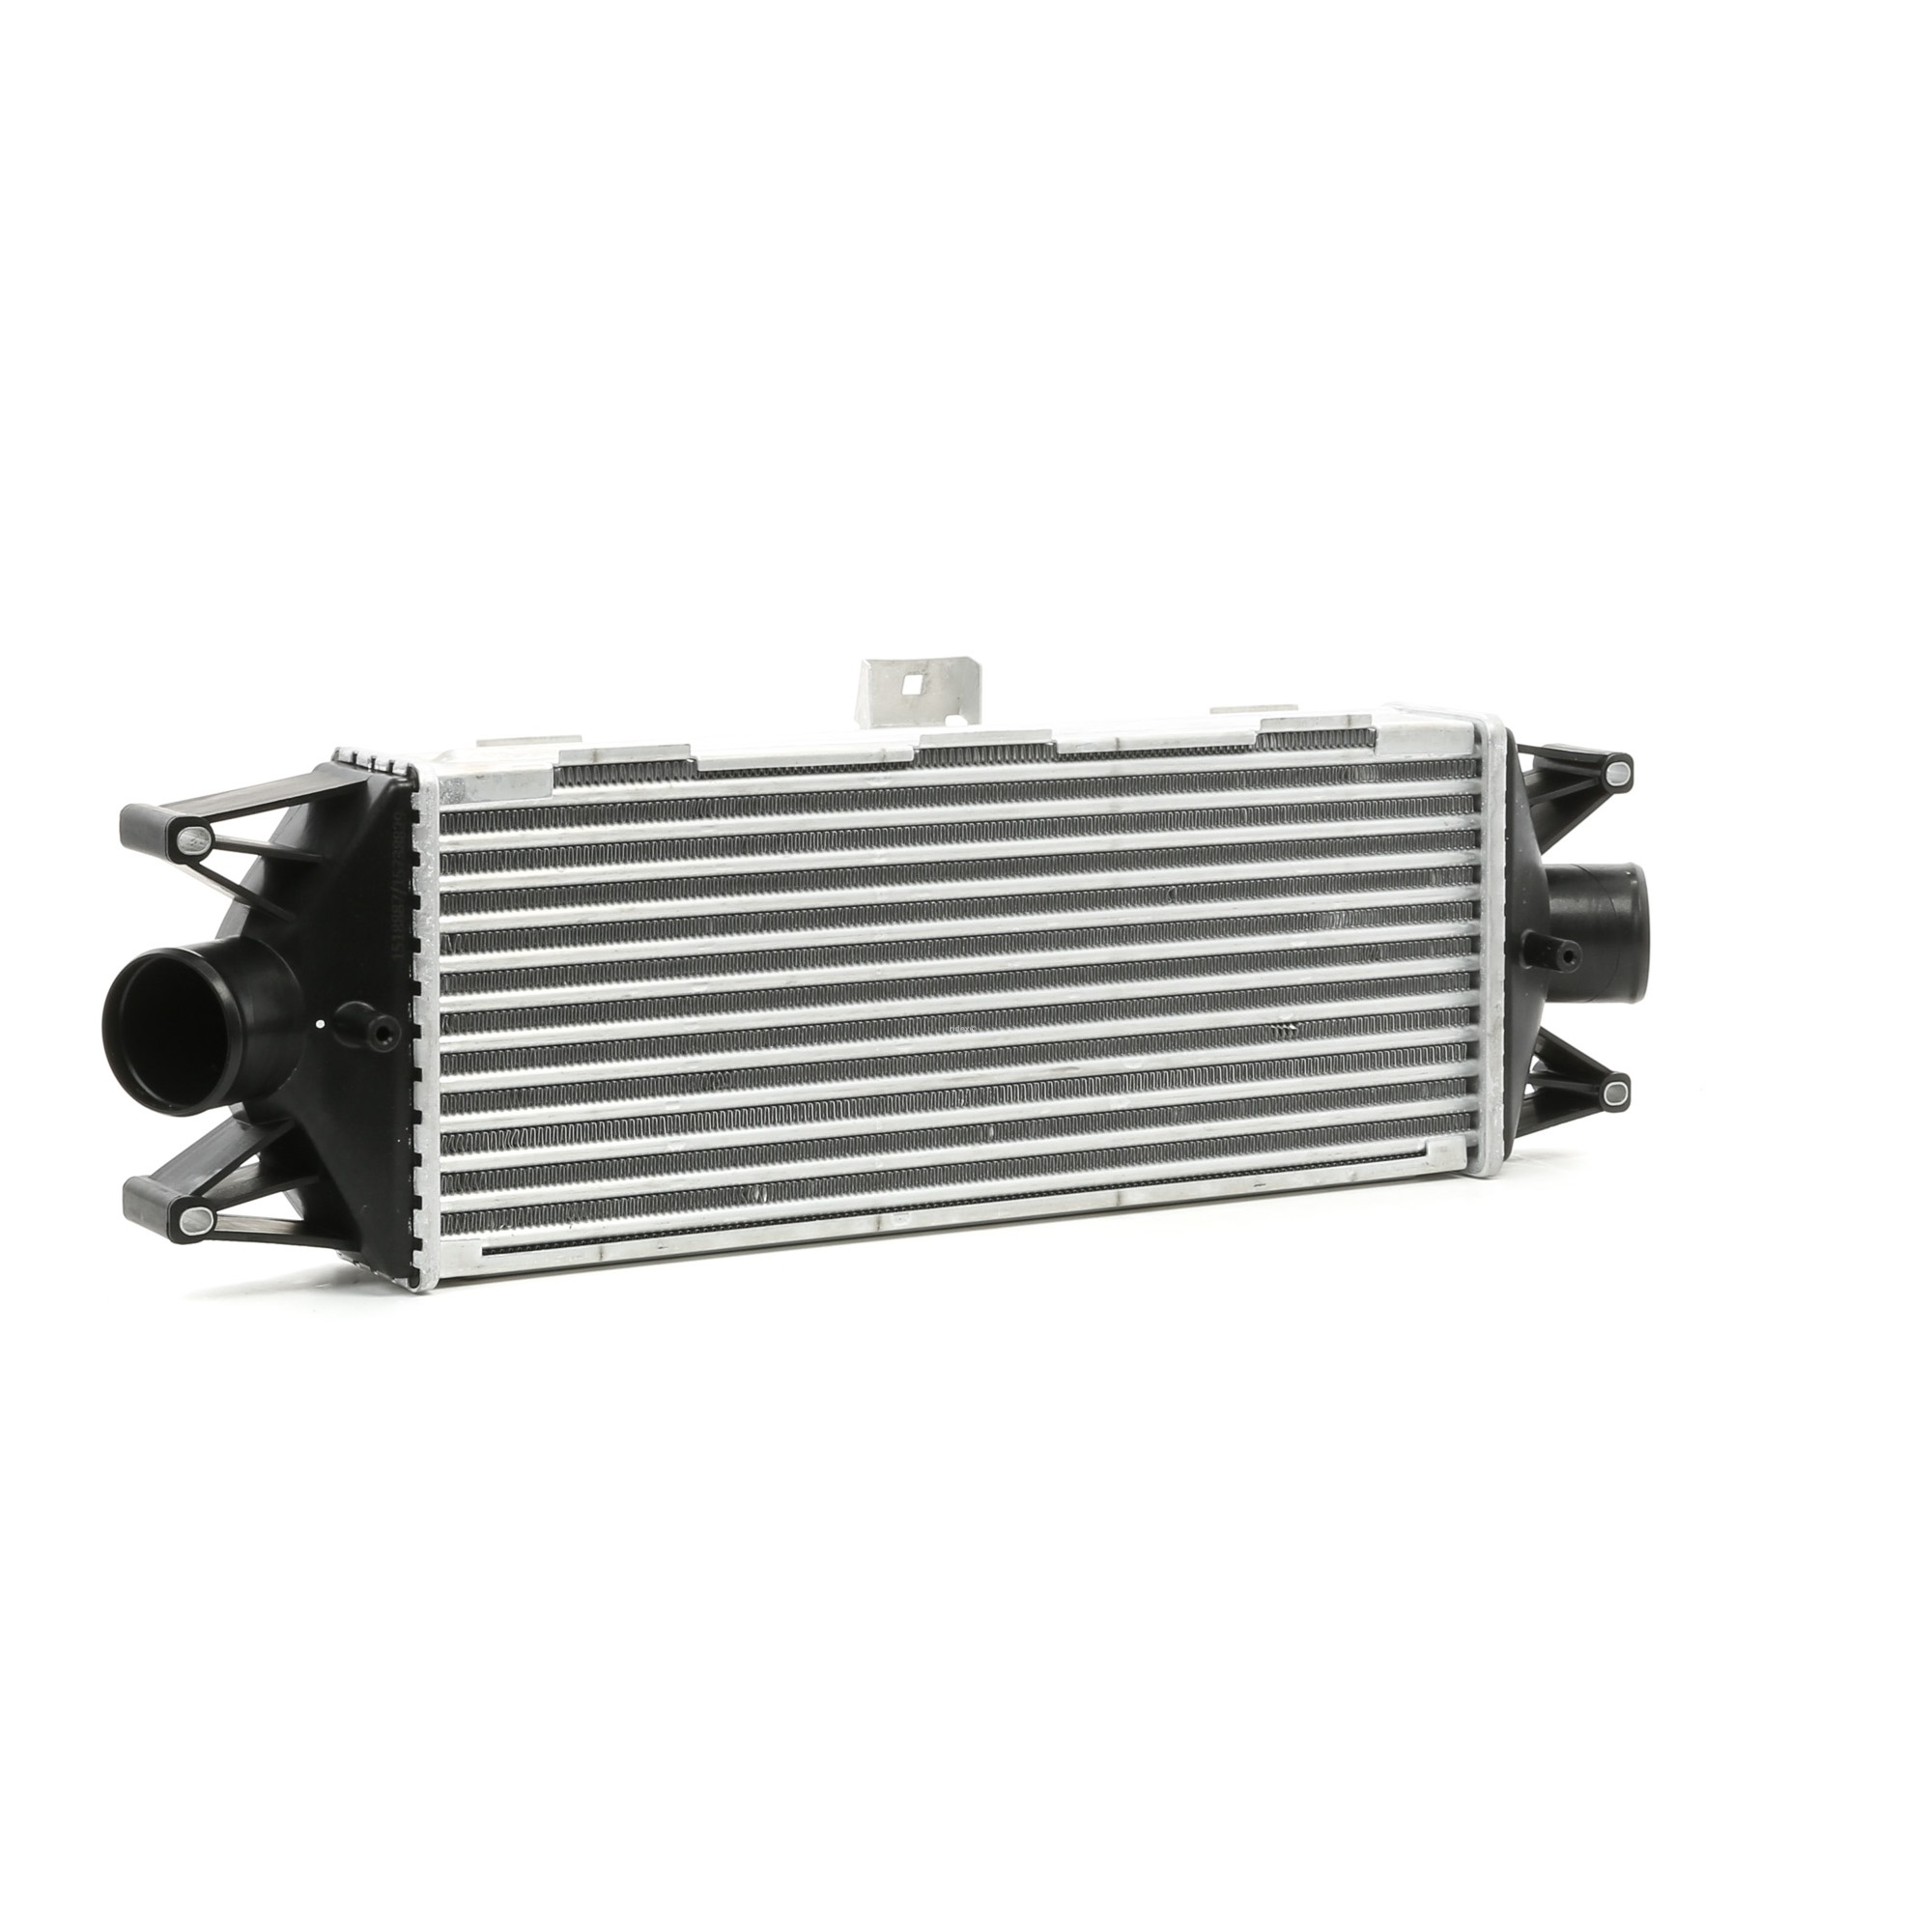 RIDEX Ladeluftkühler IVECO,MULTICAR 468I0129 504022617,504084140,504086501 Intercooler 5801313640,5801349166,99487925